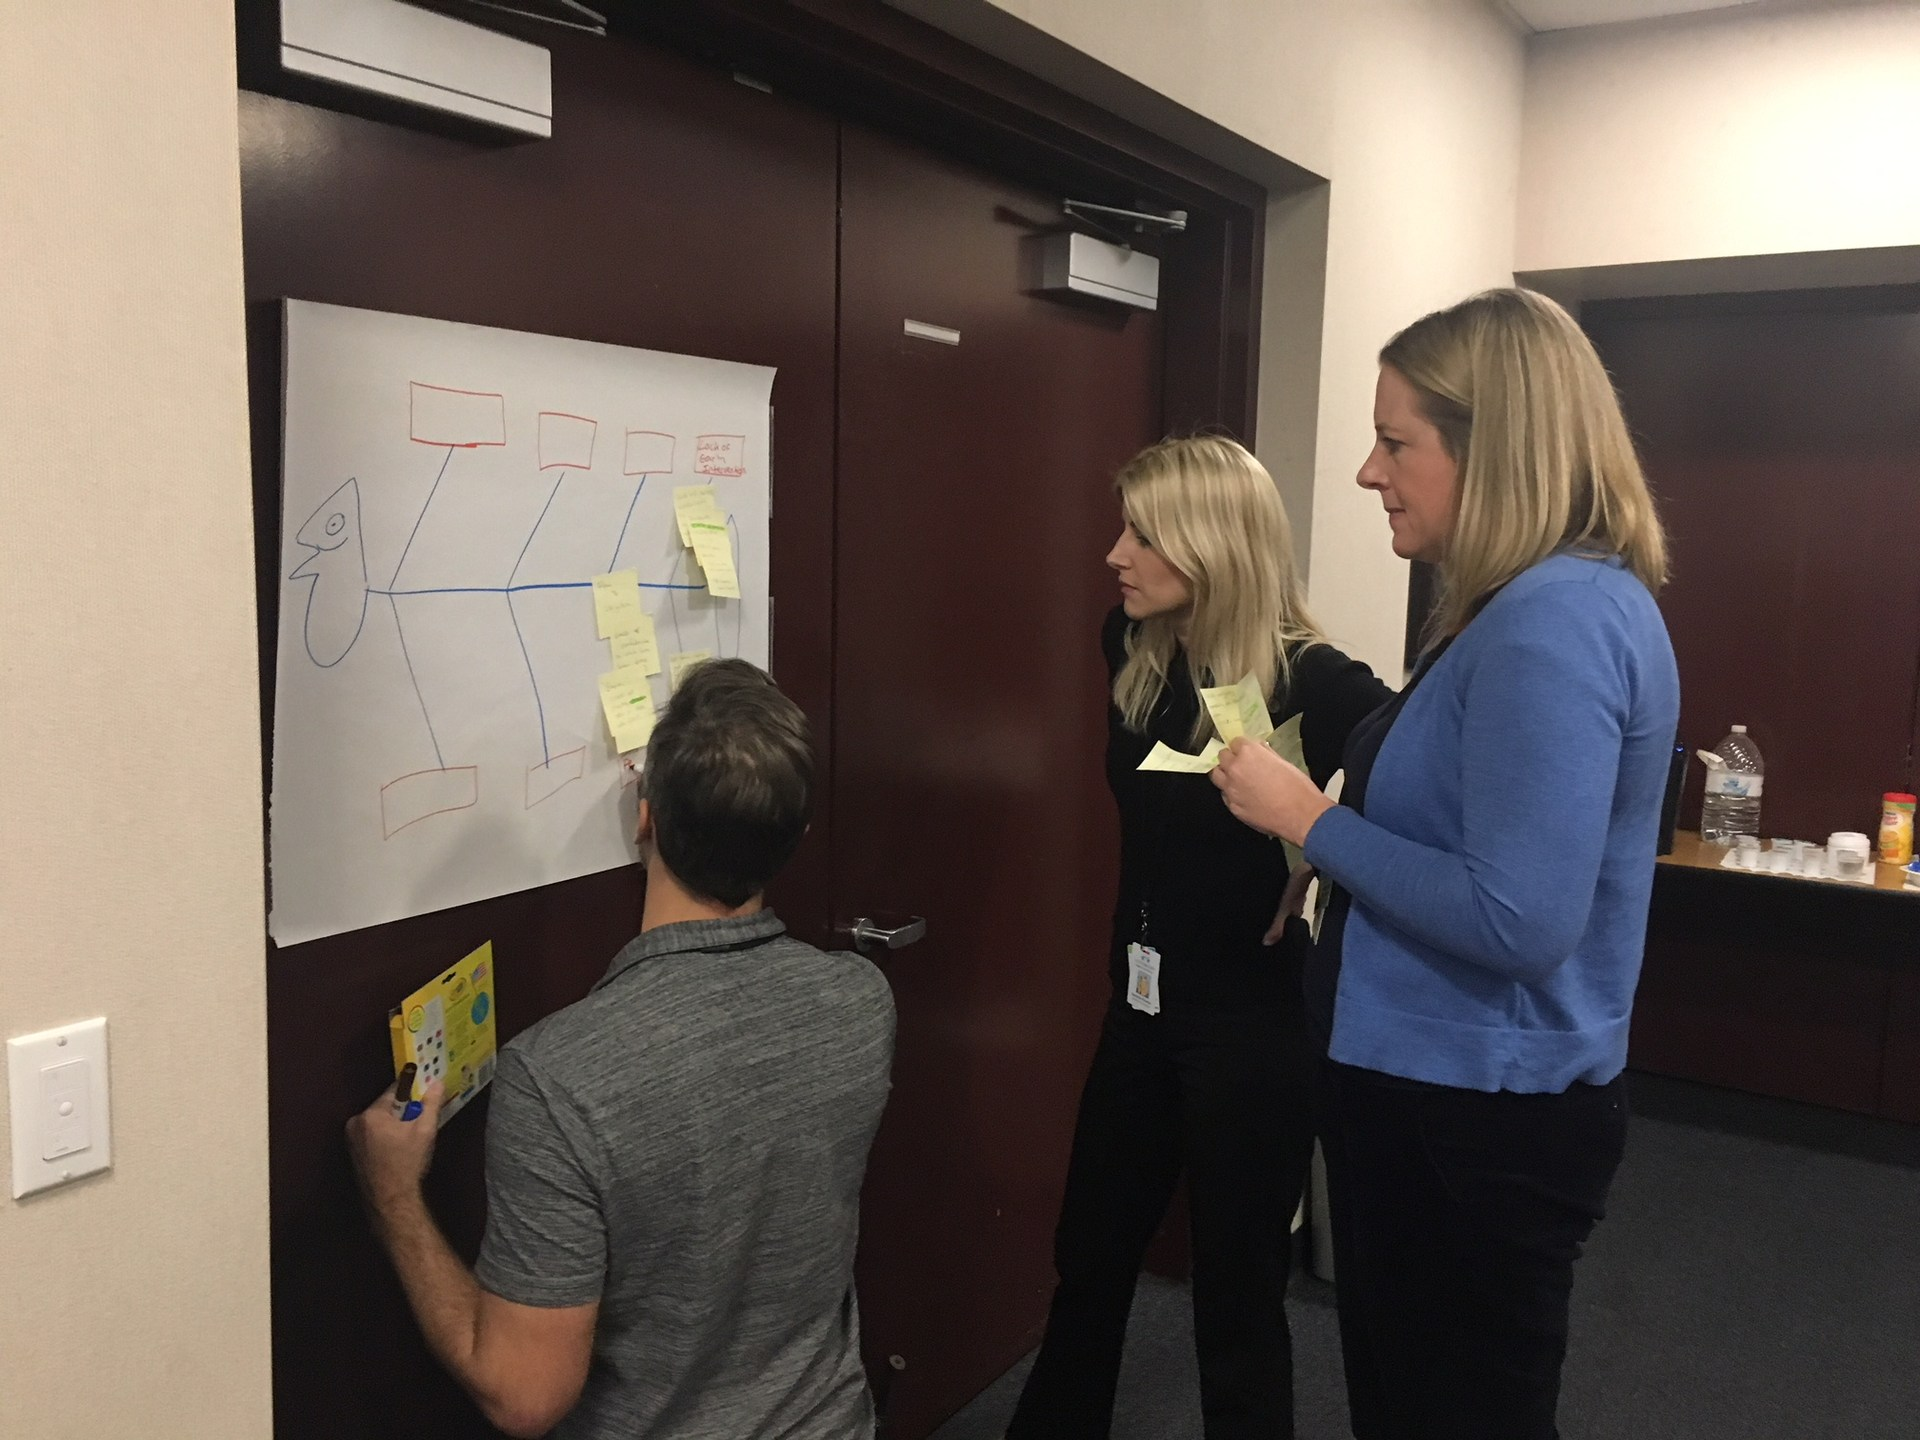 Members of the Mental Health Task Force working in a small group brainstorming and writing on poster paper.